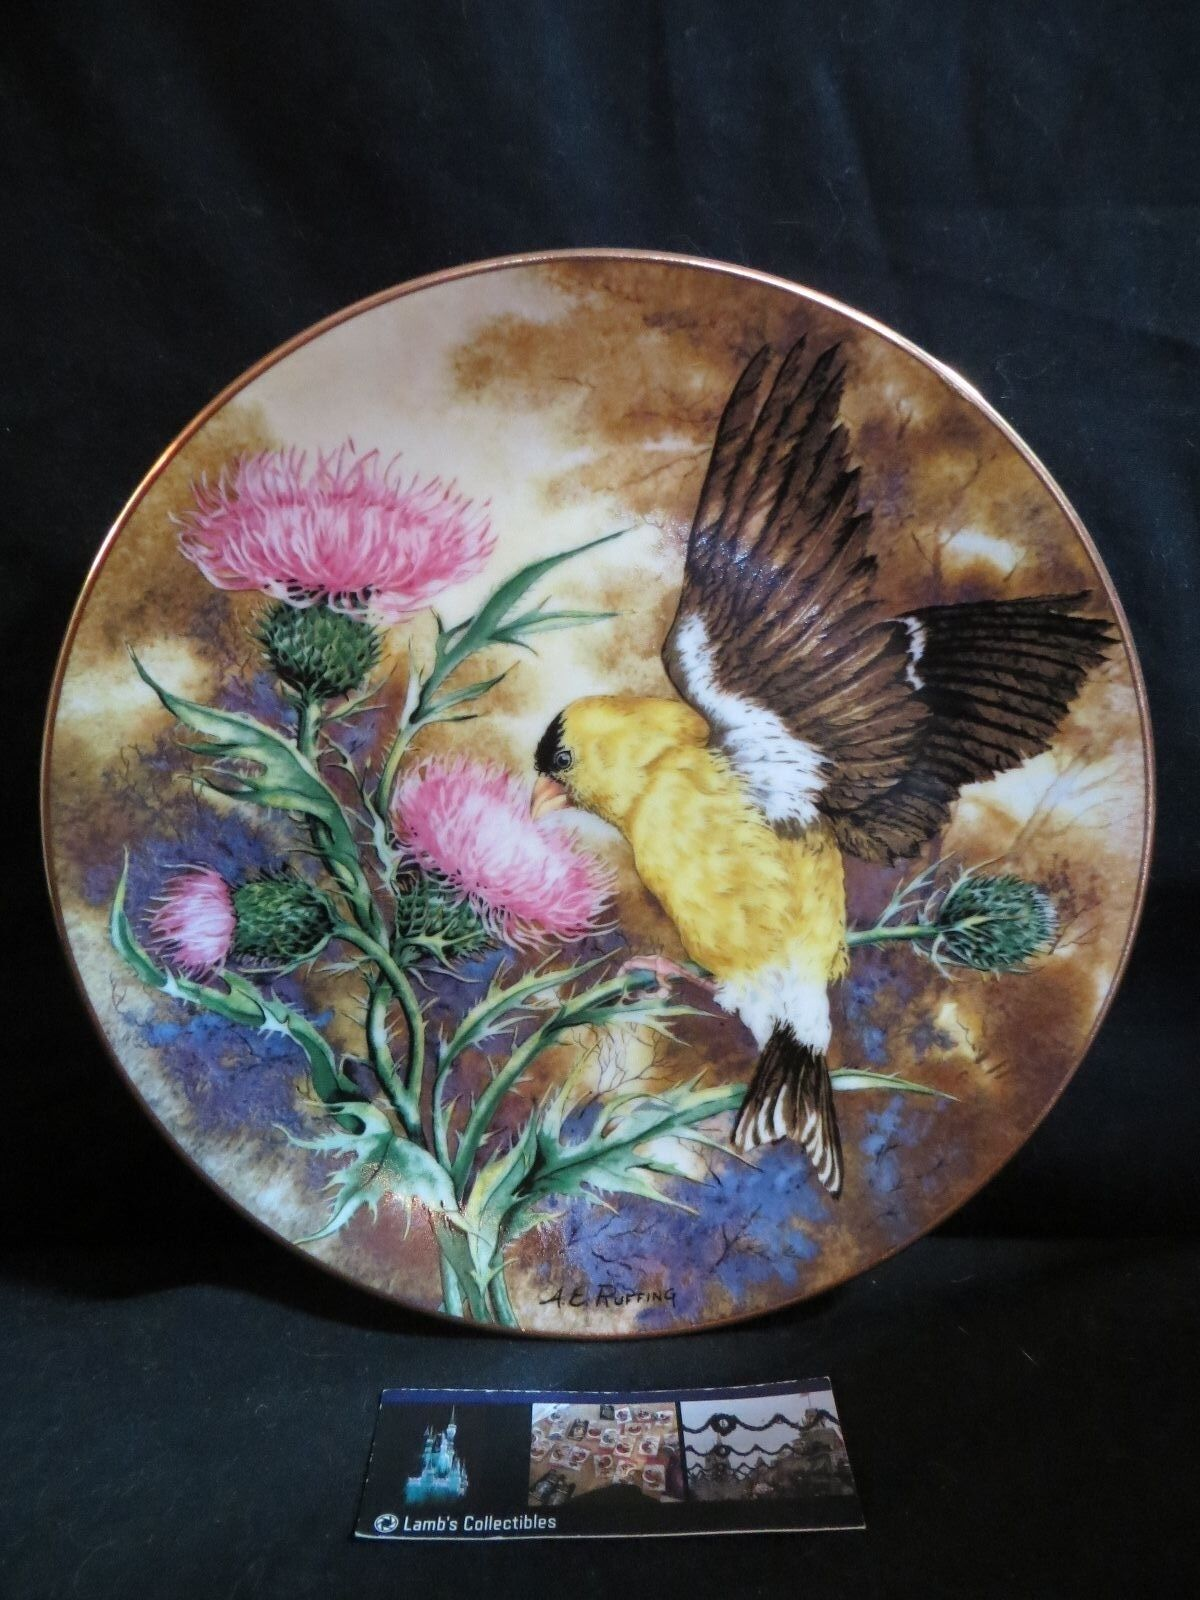 Primary image for Songbirds of South American Goldfinch AE Ruffing Royal Windsor Bird LE Plate